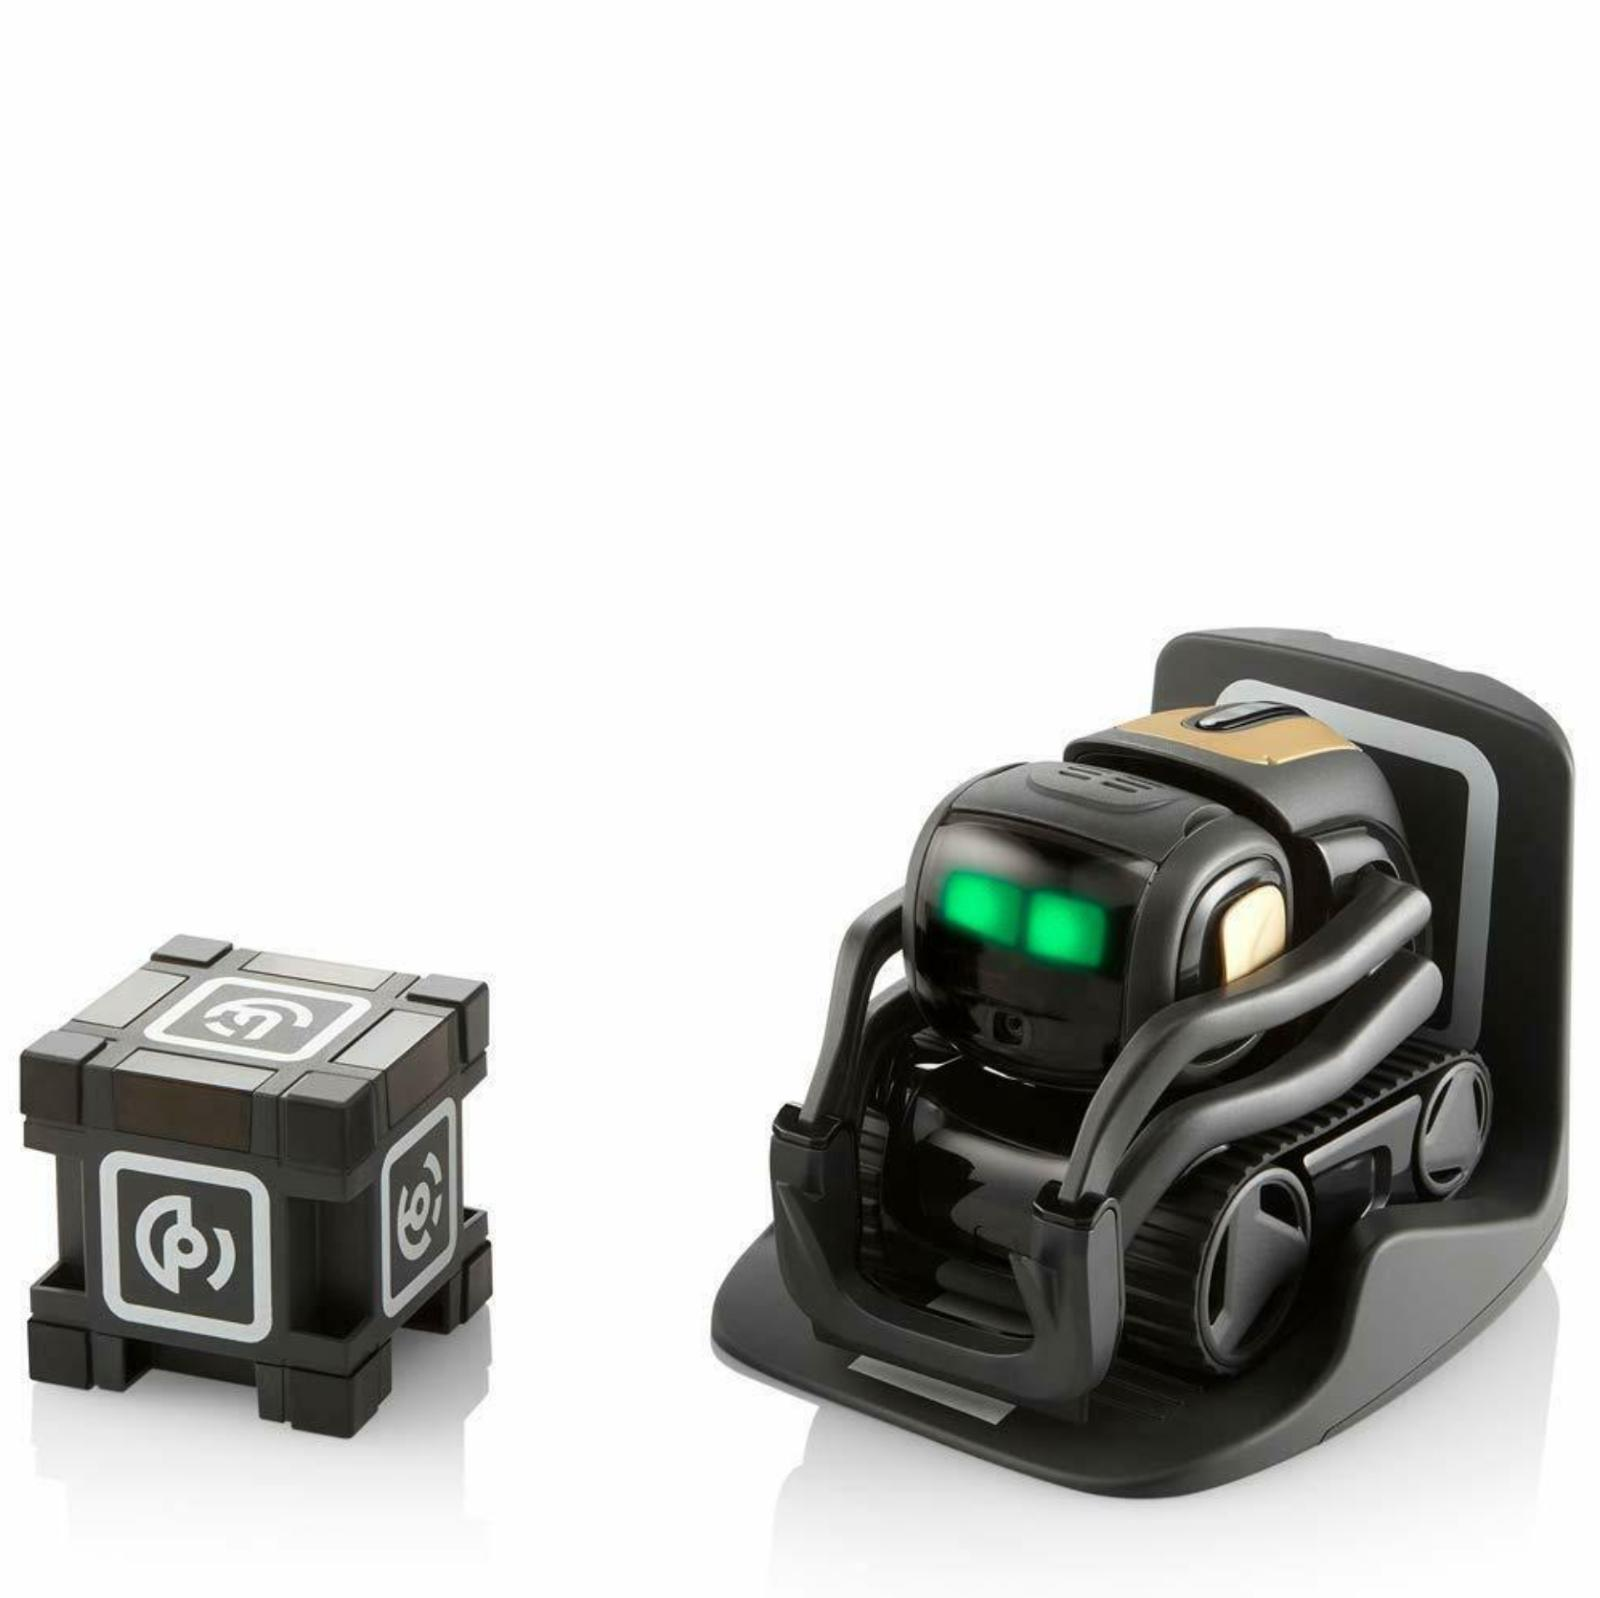 Anki Robot Toy With Built